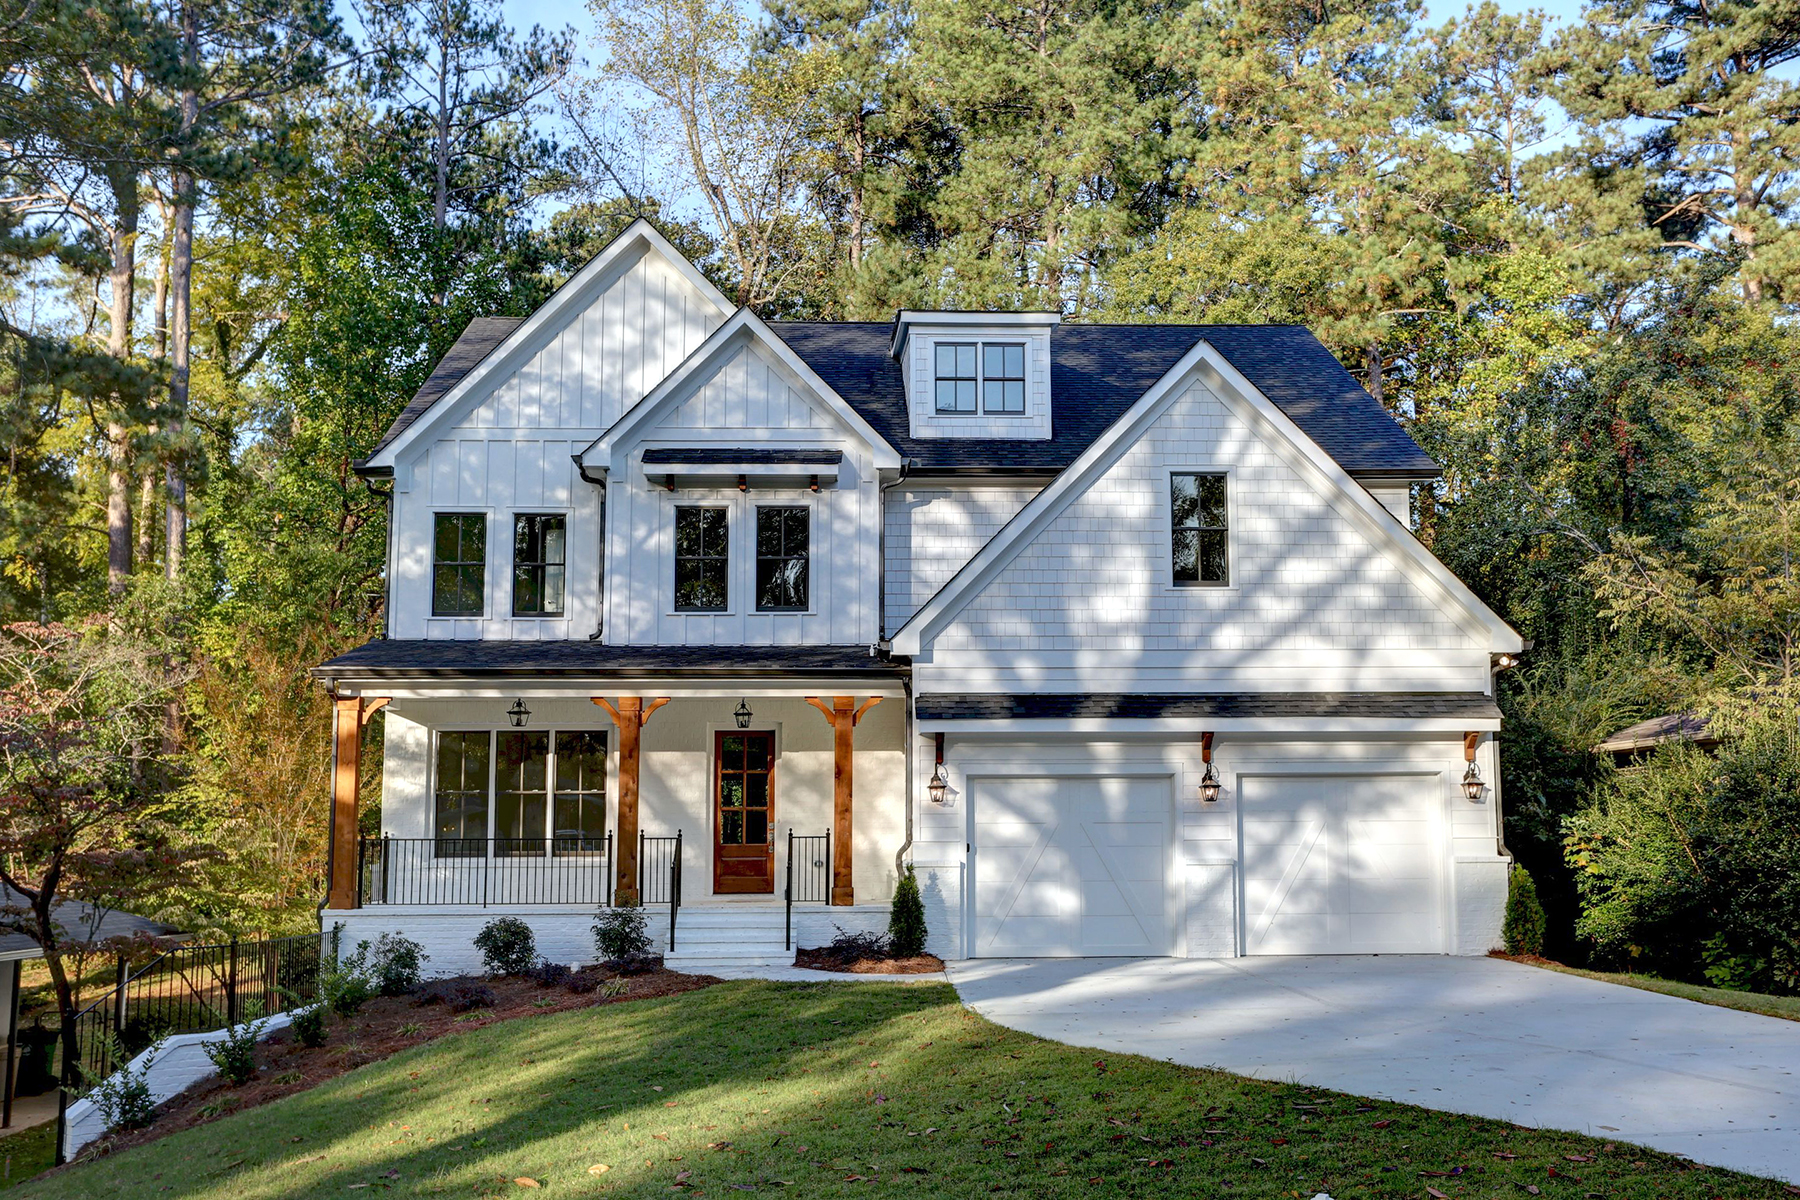 Single Family Home for Sale at Luxury New Construction In Brookhaven 2250 Fairway Circle NE Brookhaven, Georgia 30319 United States